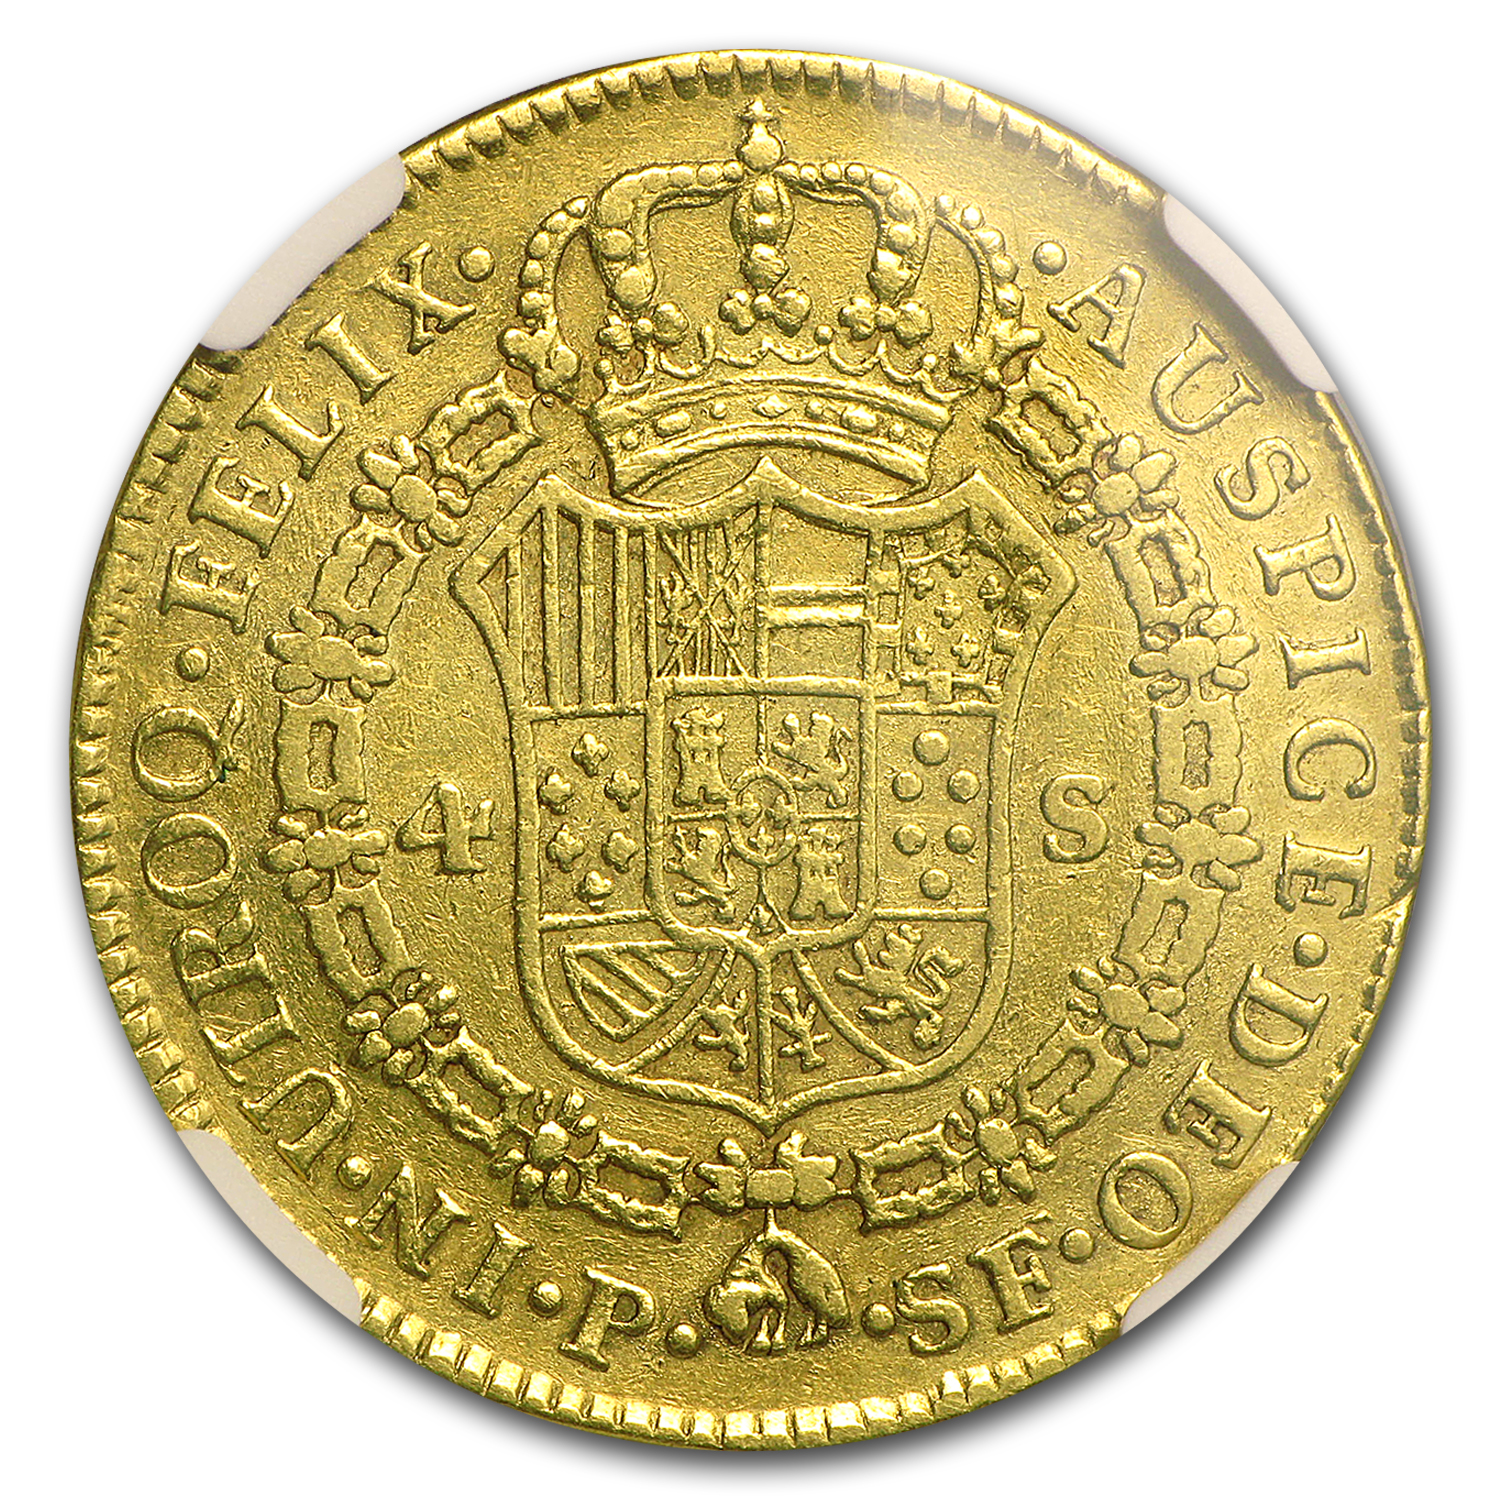 1779 P-SF Colombia Gold 4 Escudo Charles III F-12 NGC